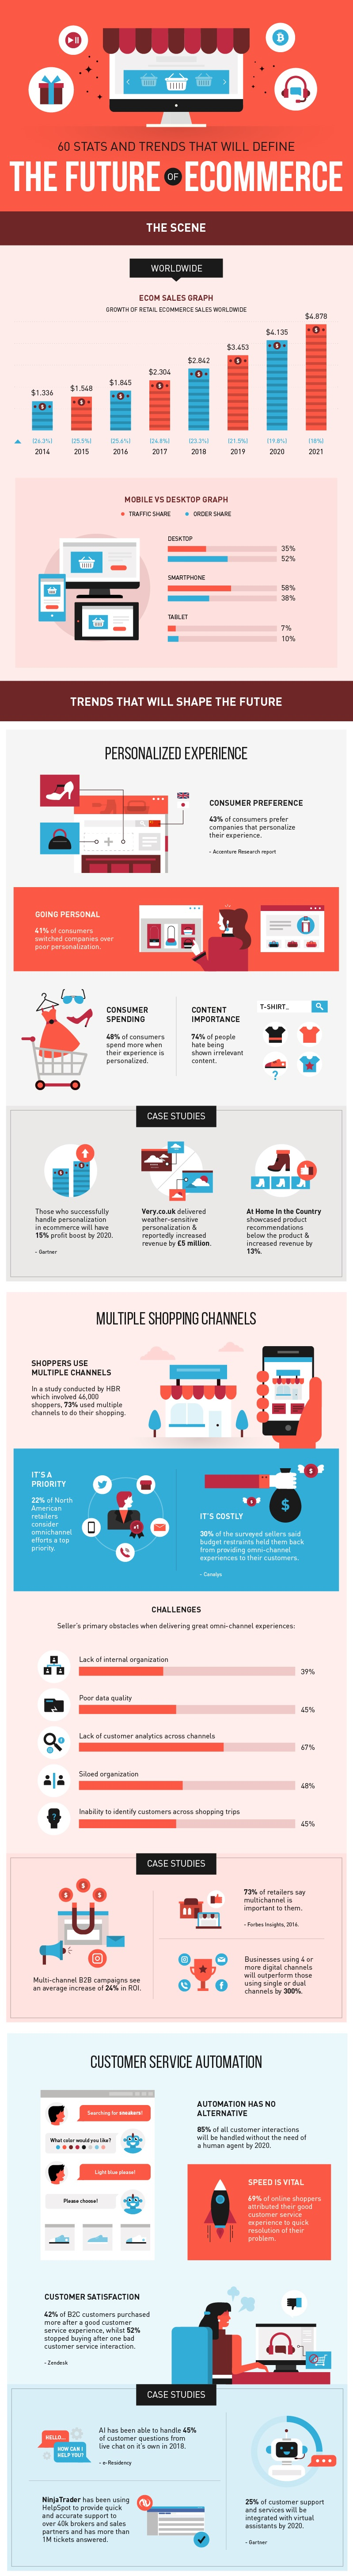 Infographic lists a collection of eCommerce Trends